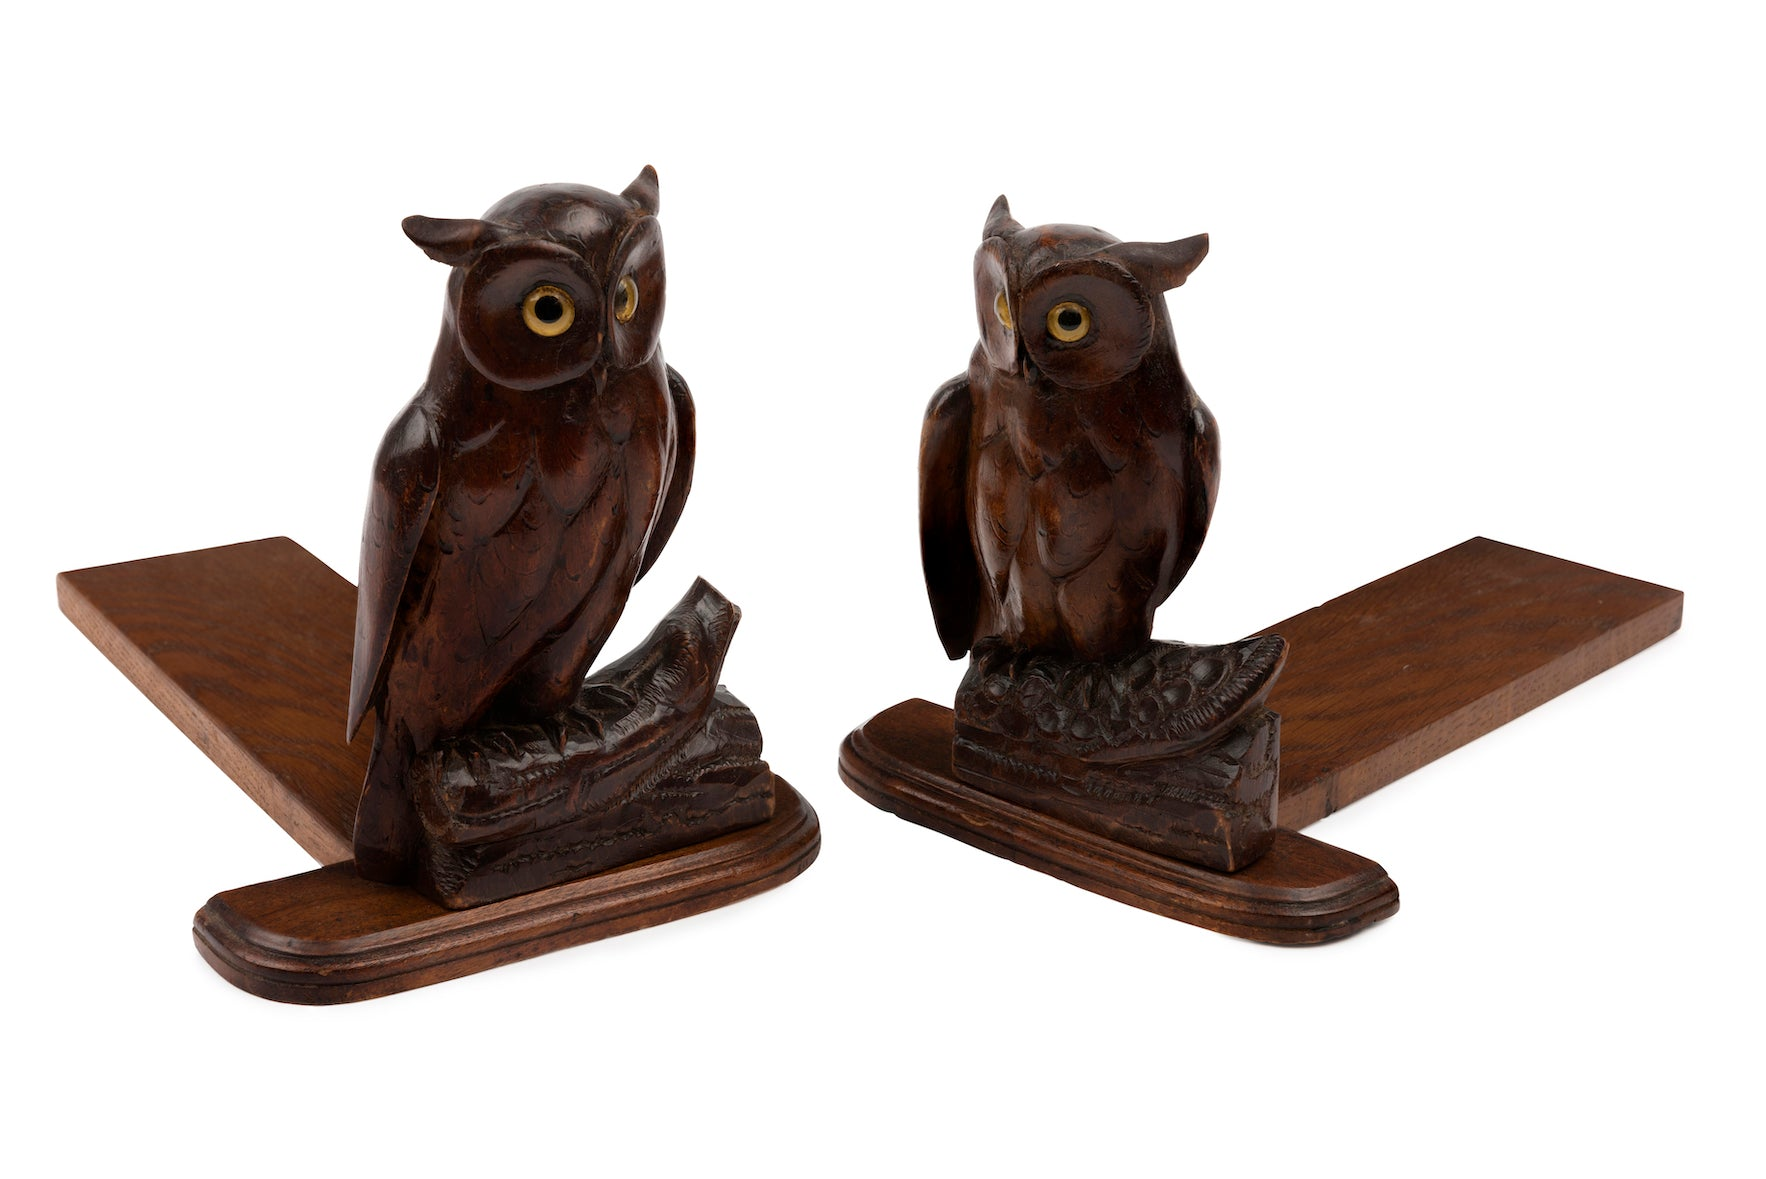 SOLD A pair of charming carved wooden owl bookends, French Circa 1900